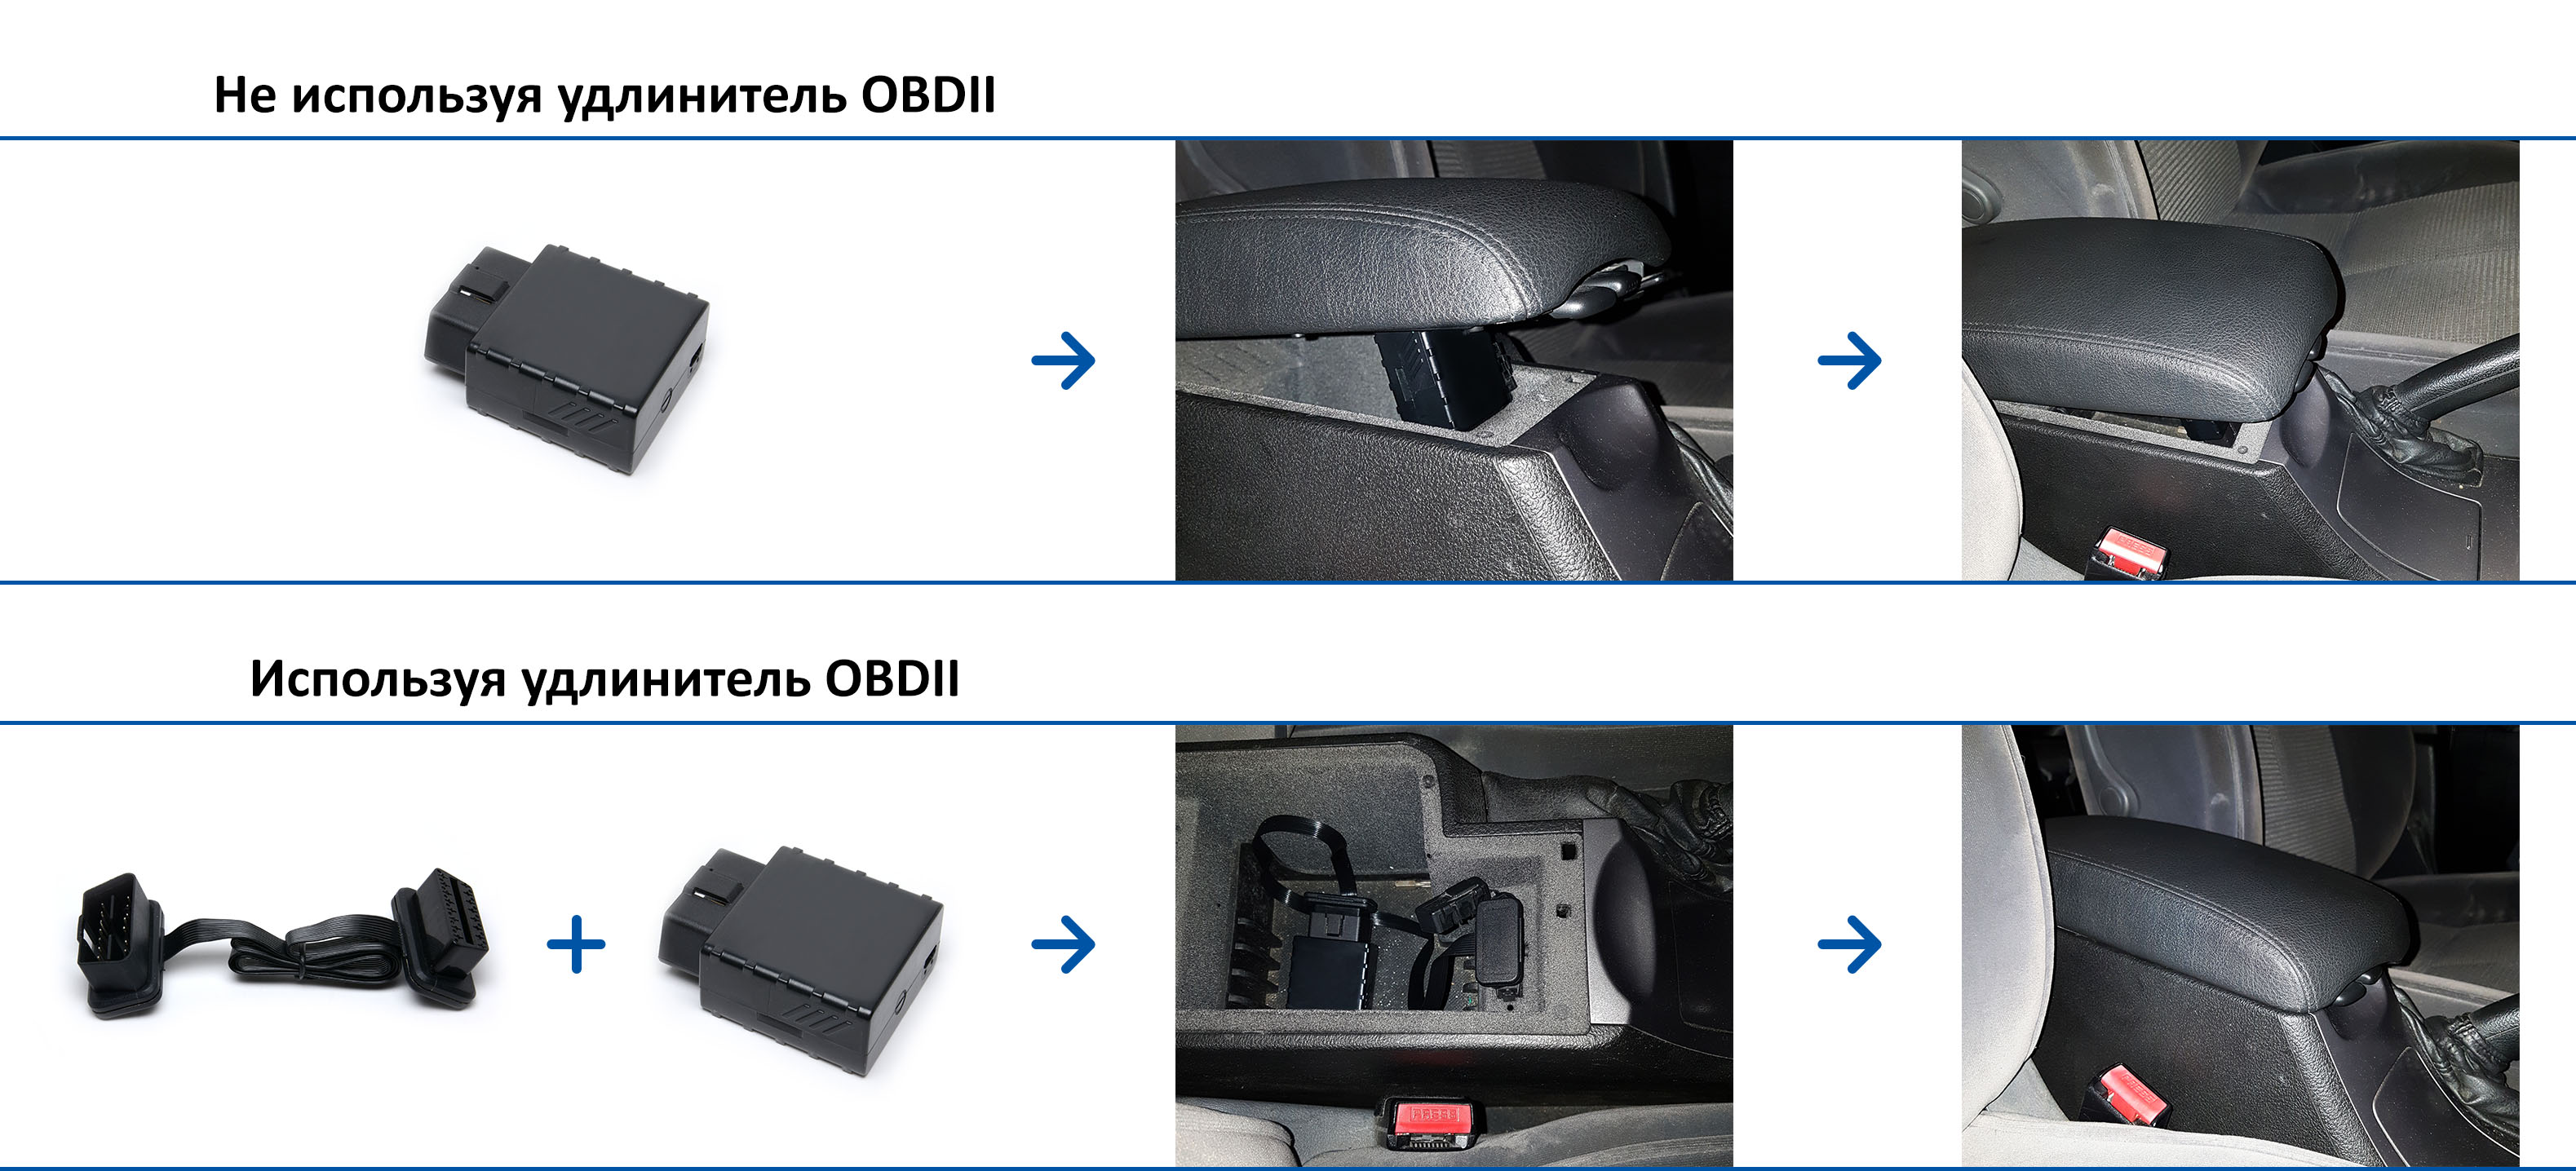 obd-extension-cable-ru.jpg